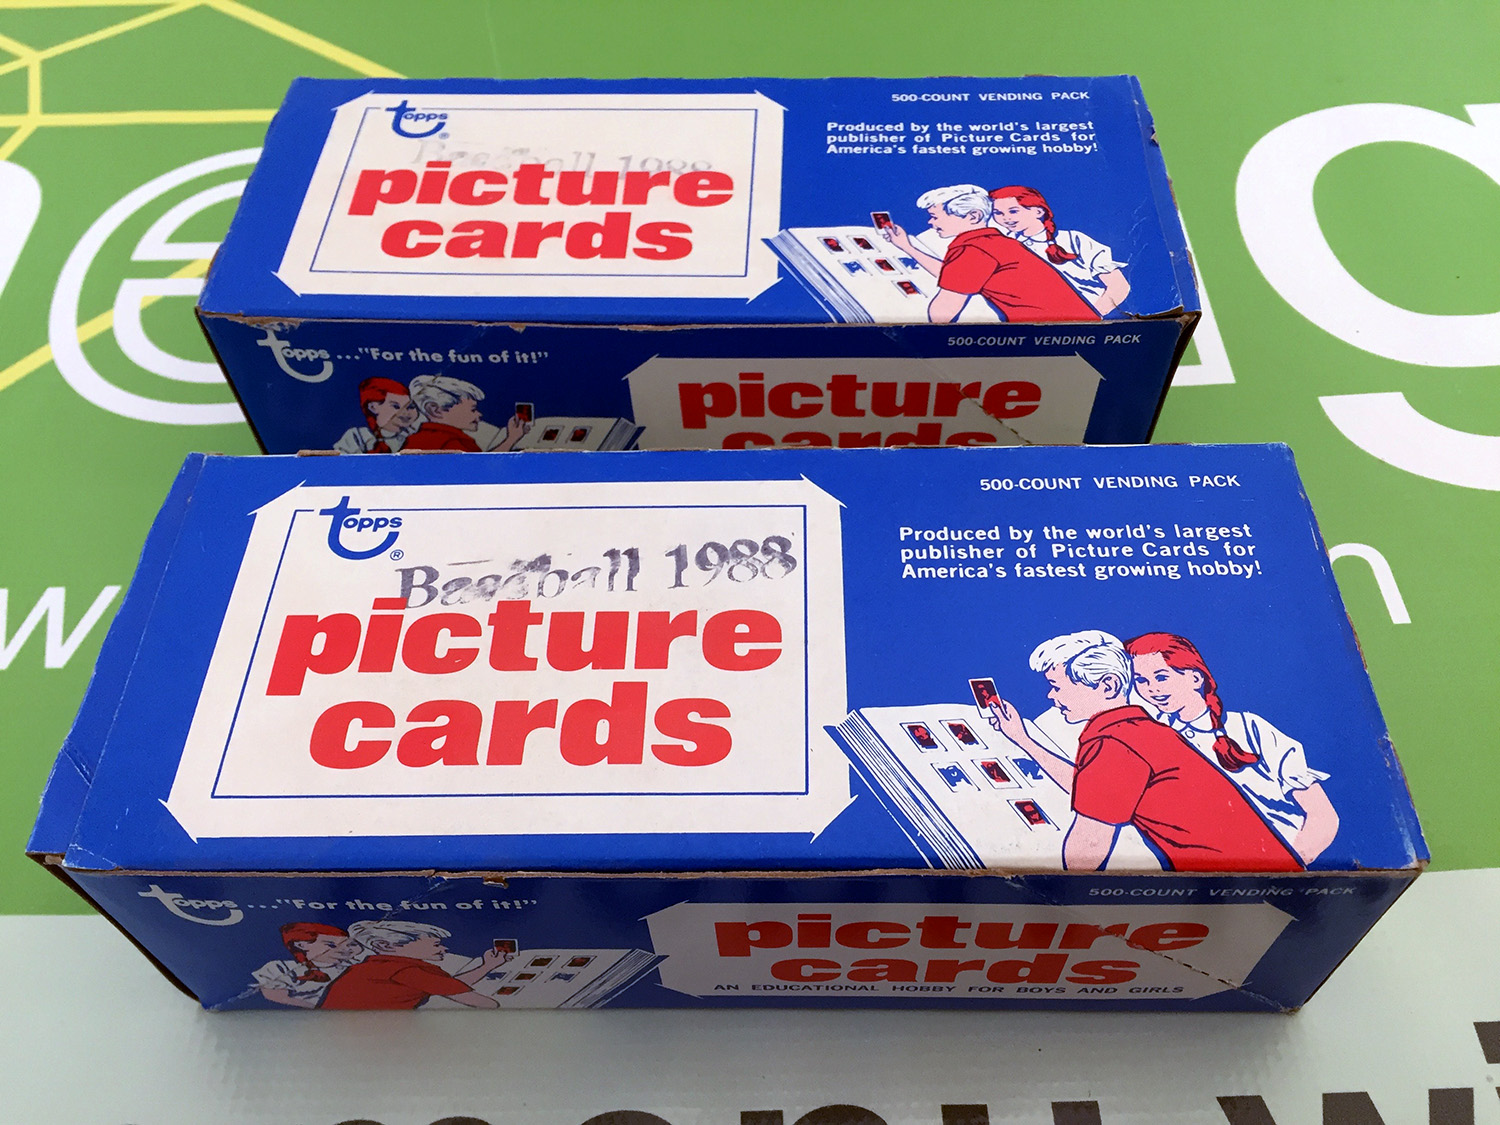 1988 Topps Baseball Cards Vending Boxes Set of 2 [SEE VIDEO]